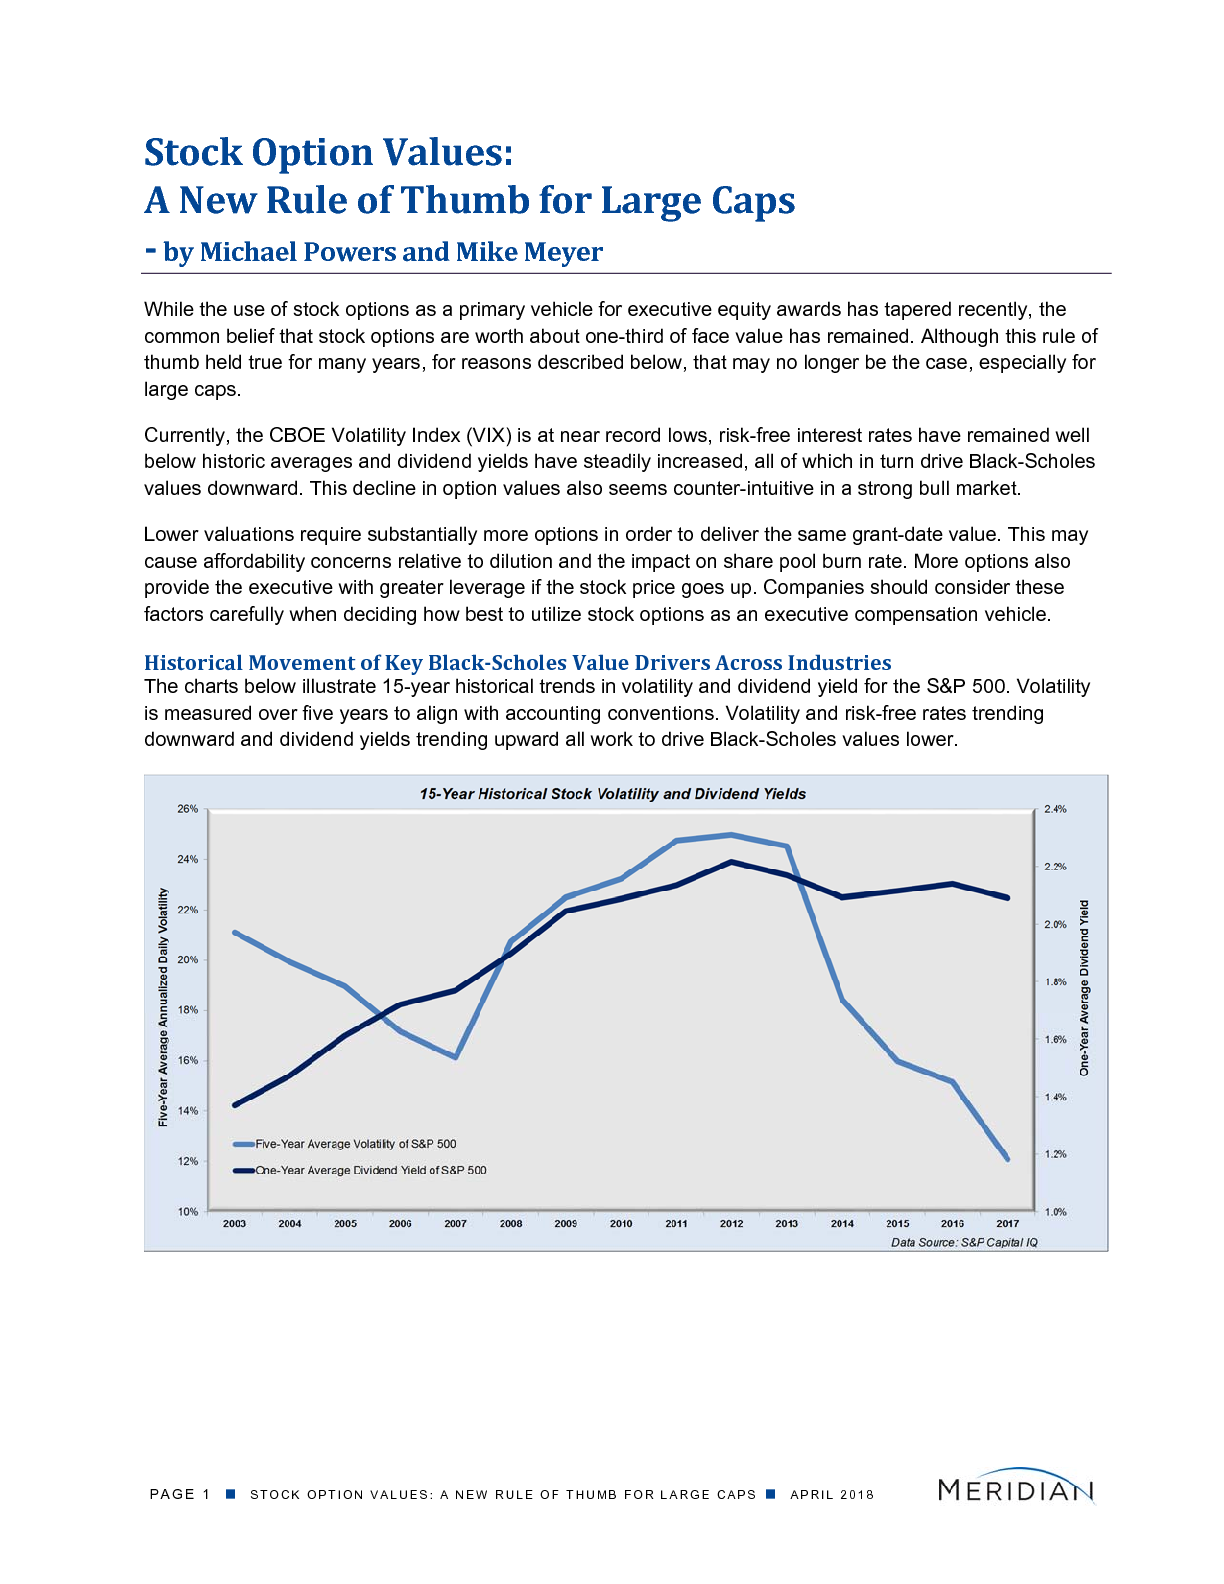 Stock Option Values: A New Rule of Thumb for Large Caps (PDF)